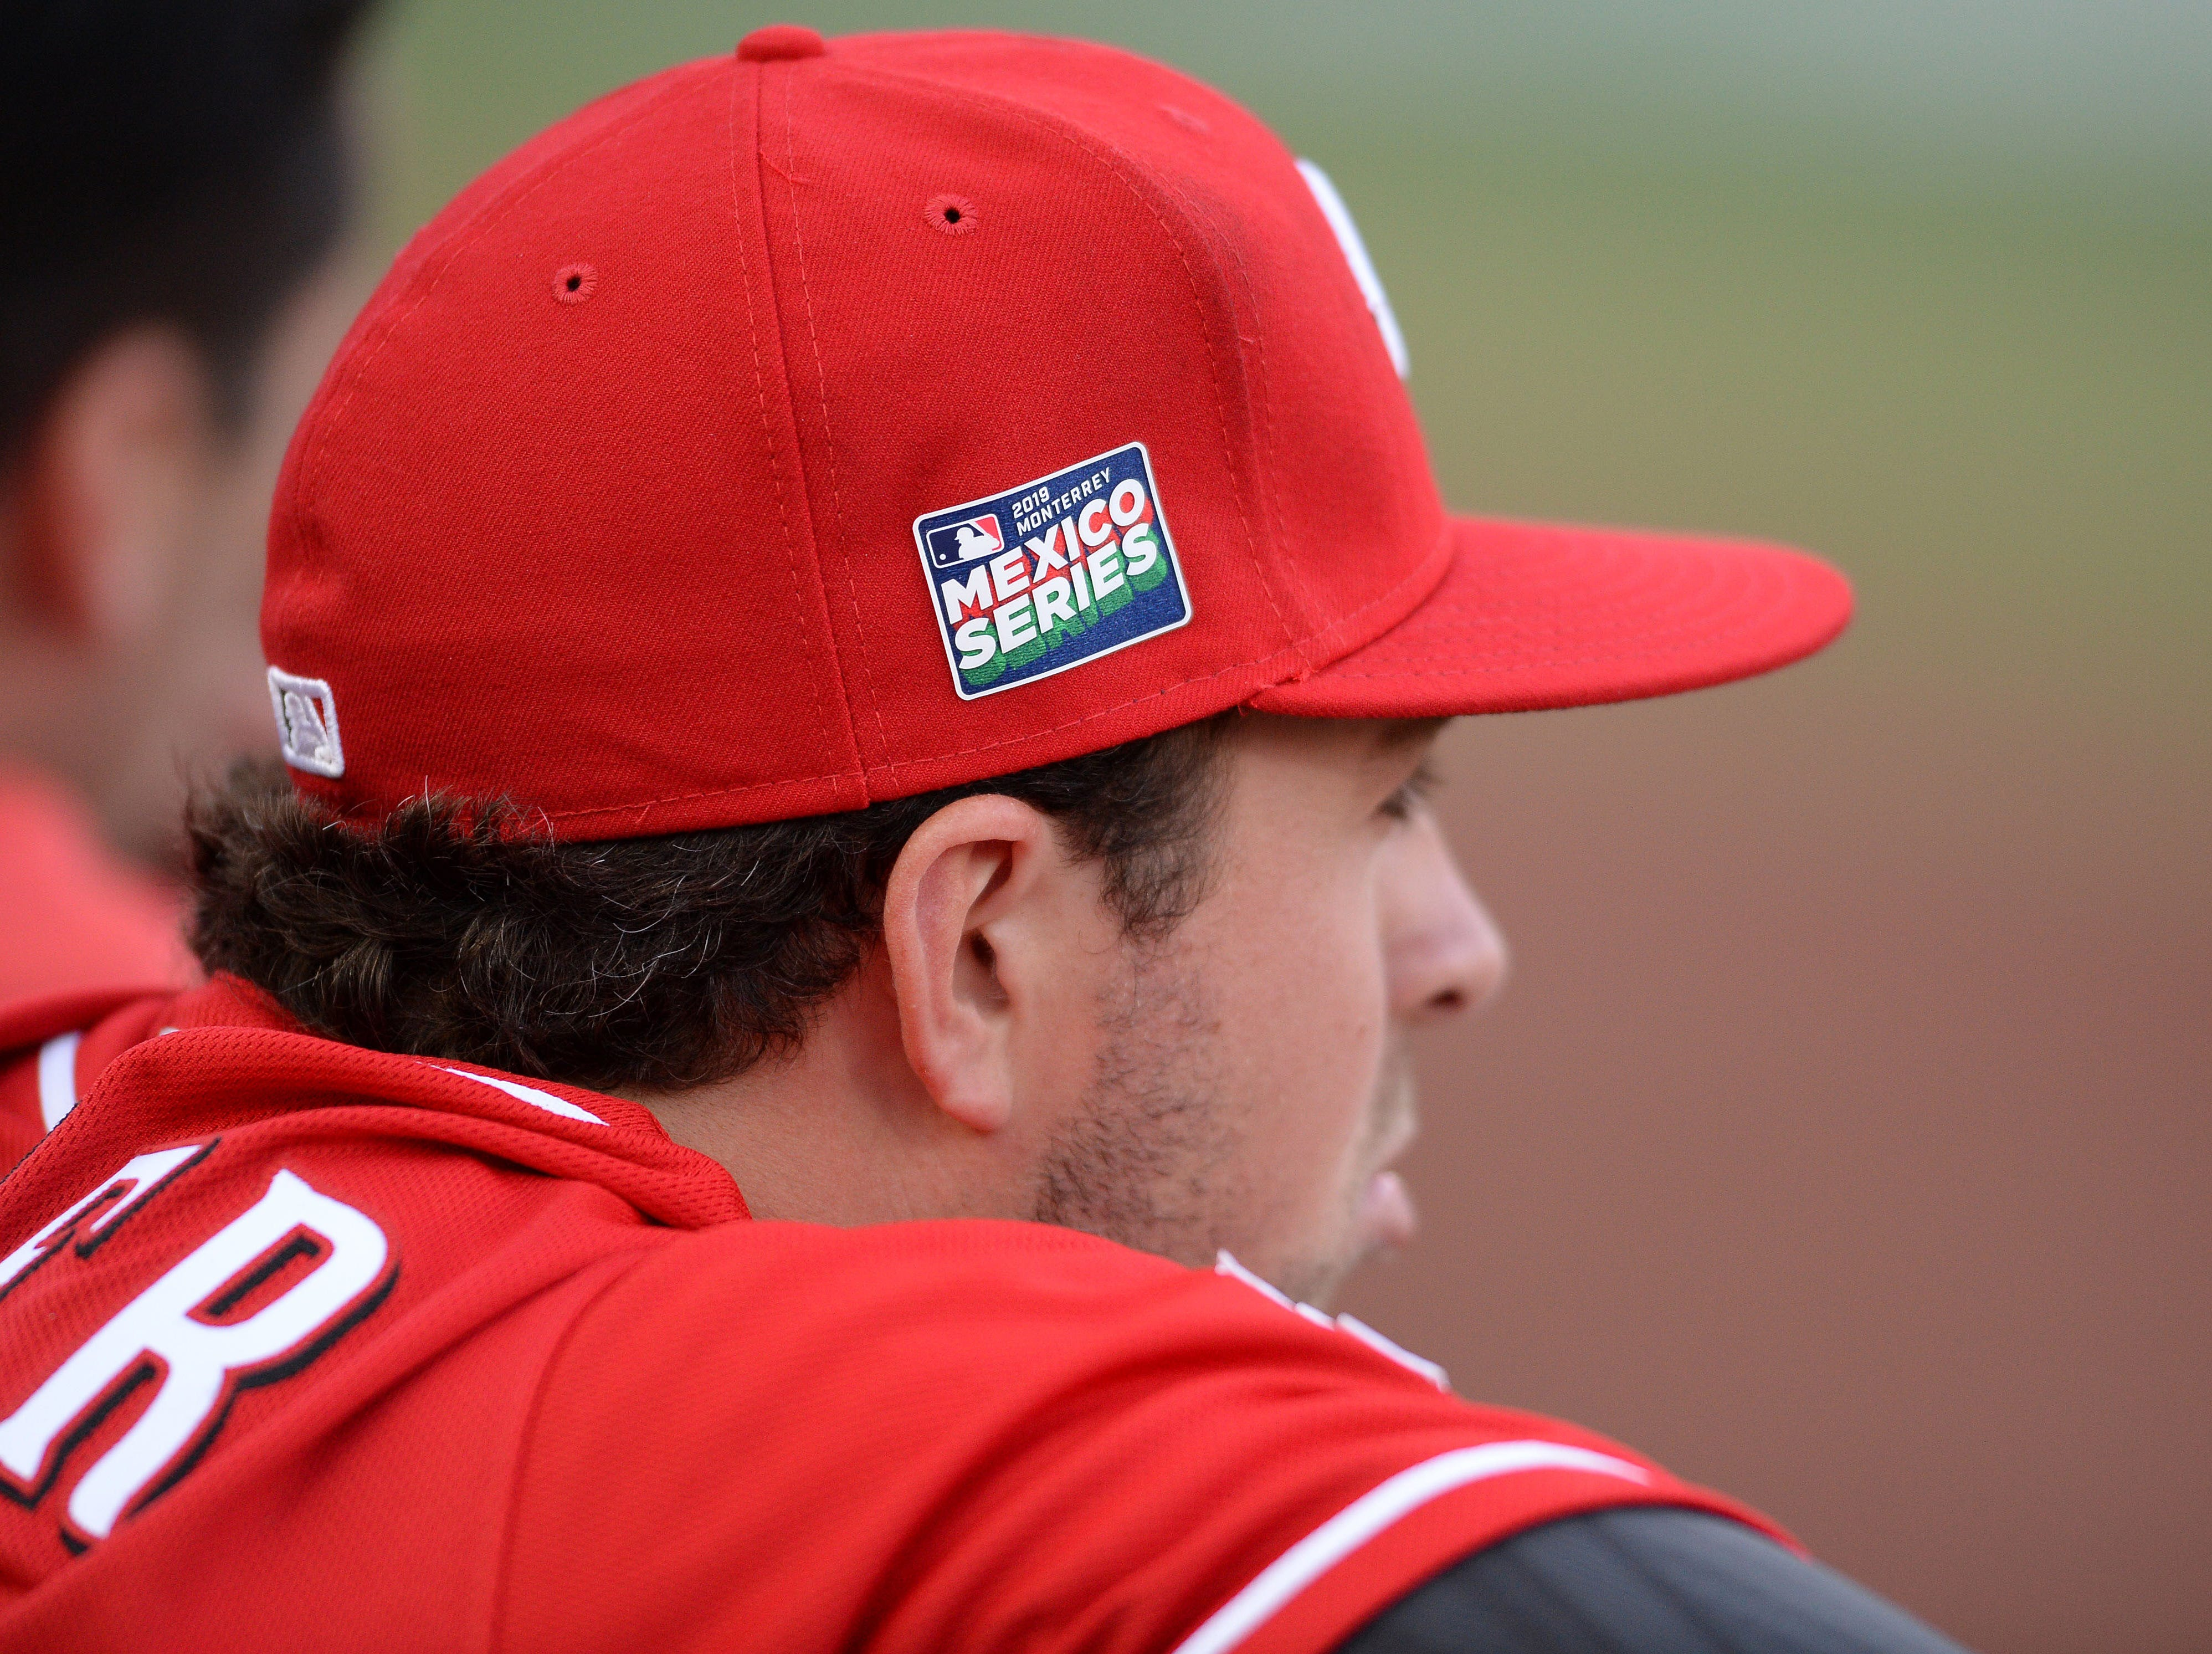 A detailed view of the Mexico Series hat worn by Cincinnati Reds catcher Kyle Farmer during the fourth inning of the game against the St. Louis Cardinals at Estadio de Beisbol Monterrey.